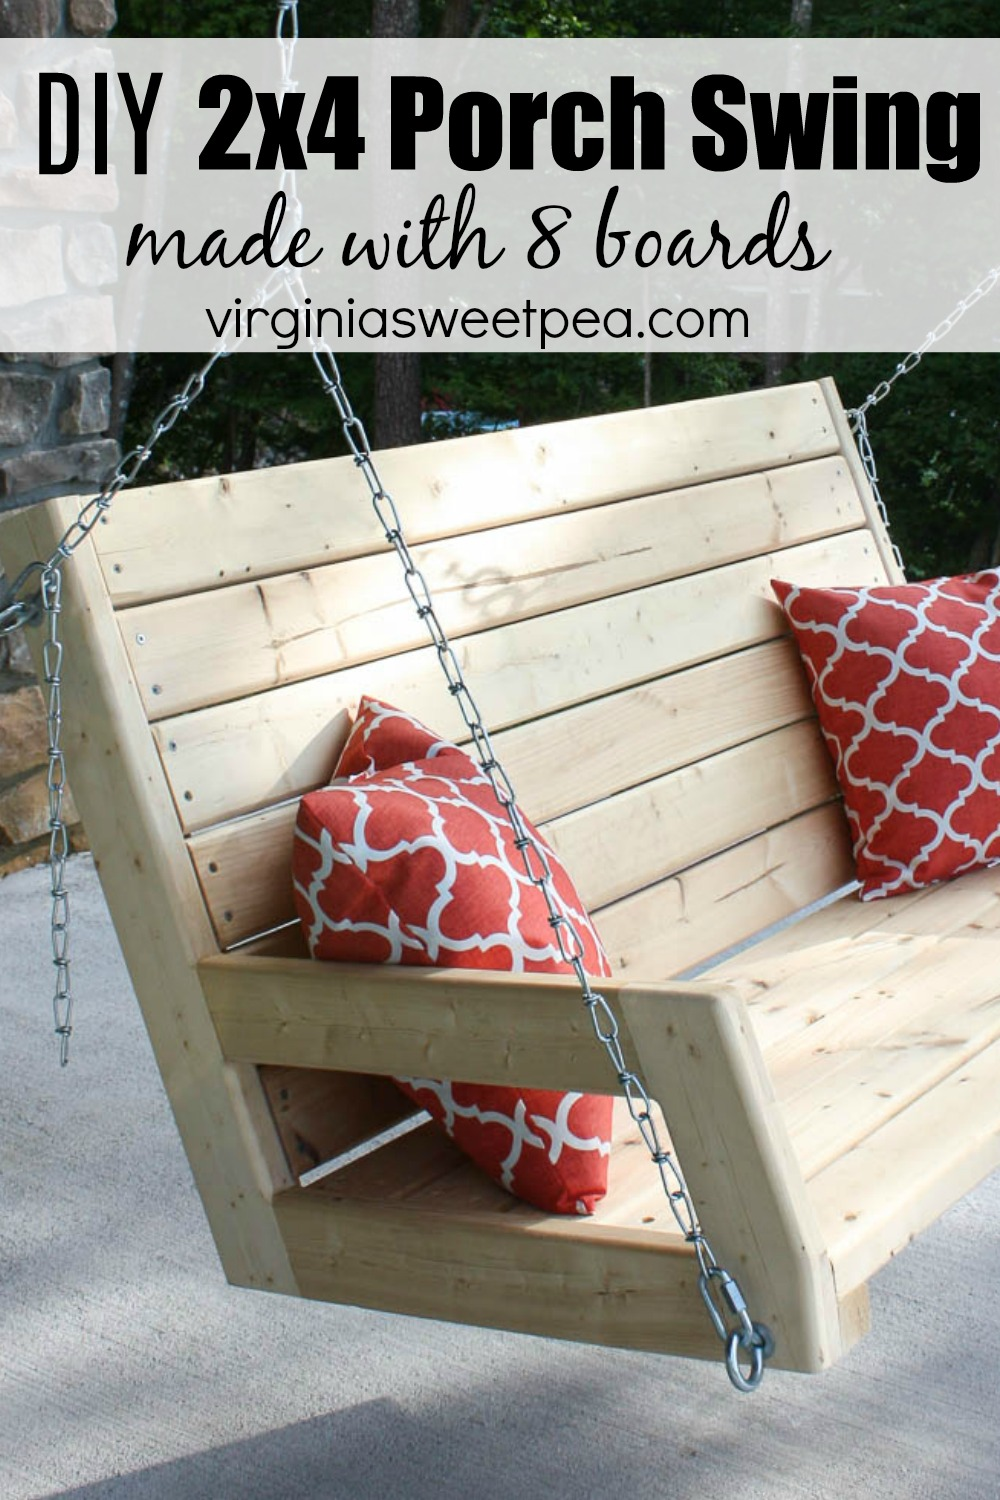 DIY 2x4 Swing - Learn how to make a swing using eight pieces of 2x4 lumber.  #porchswing #porchswing #diyporchswing via @spaula